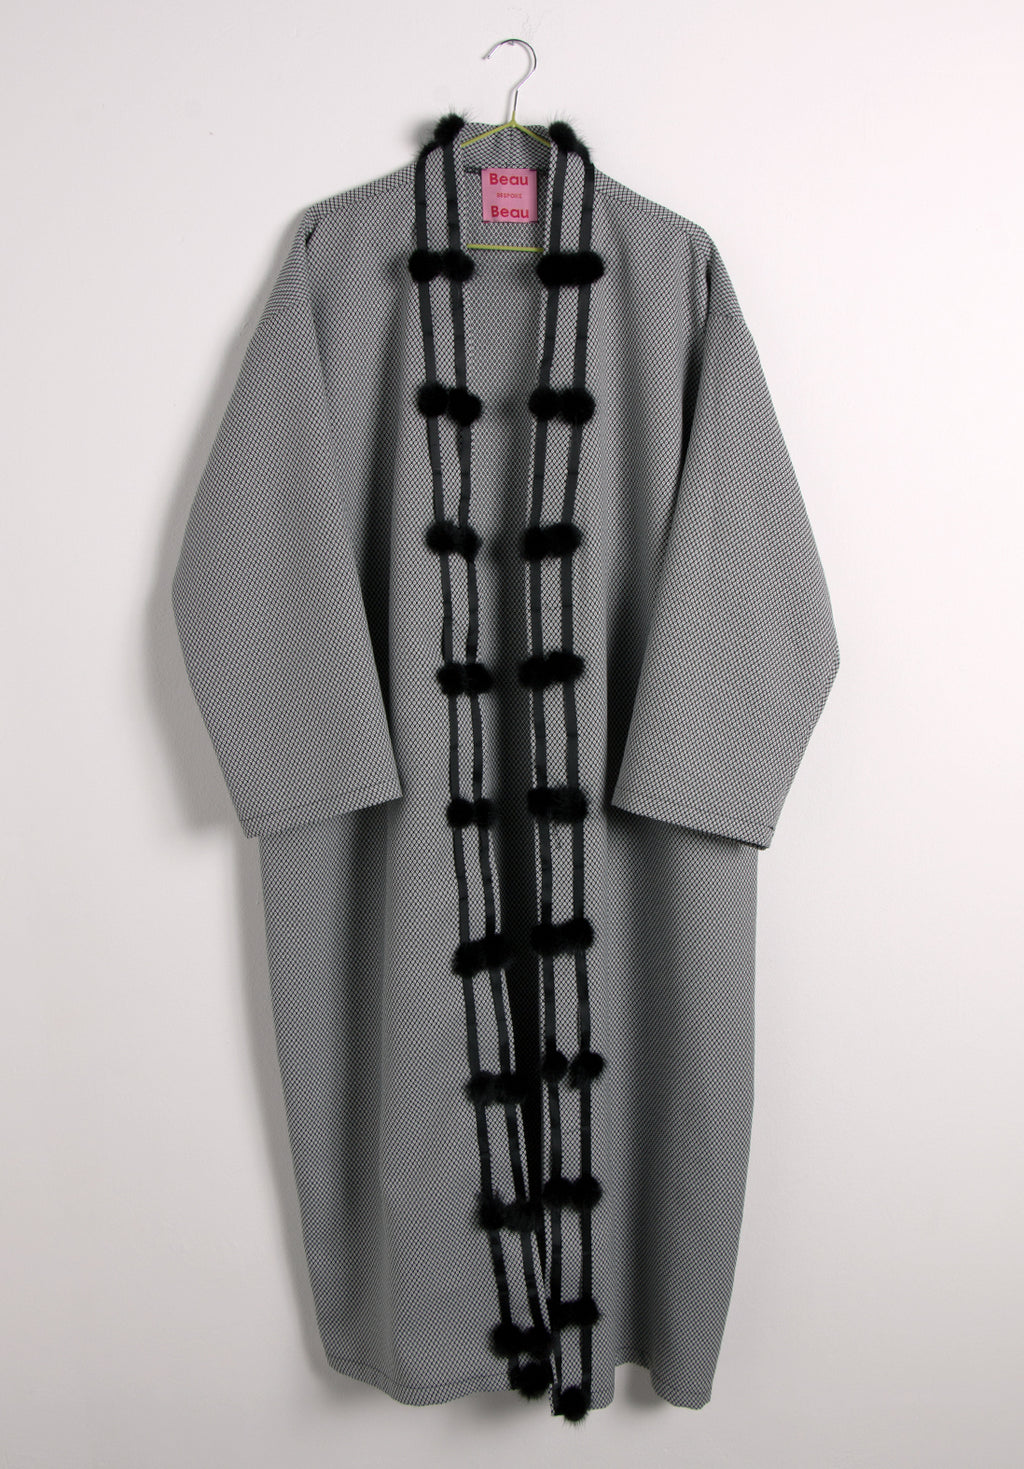 BLACK MIRROR BESPOKE ROBE